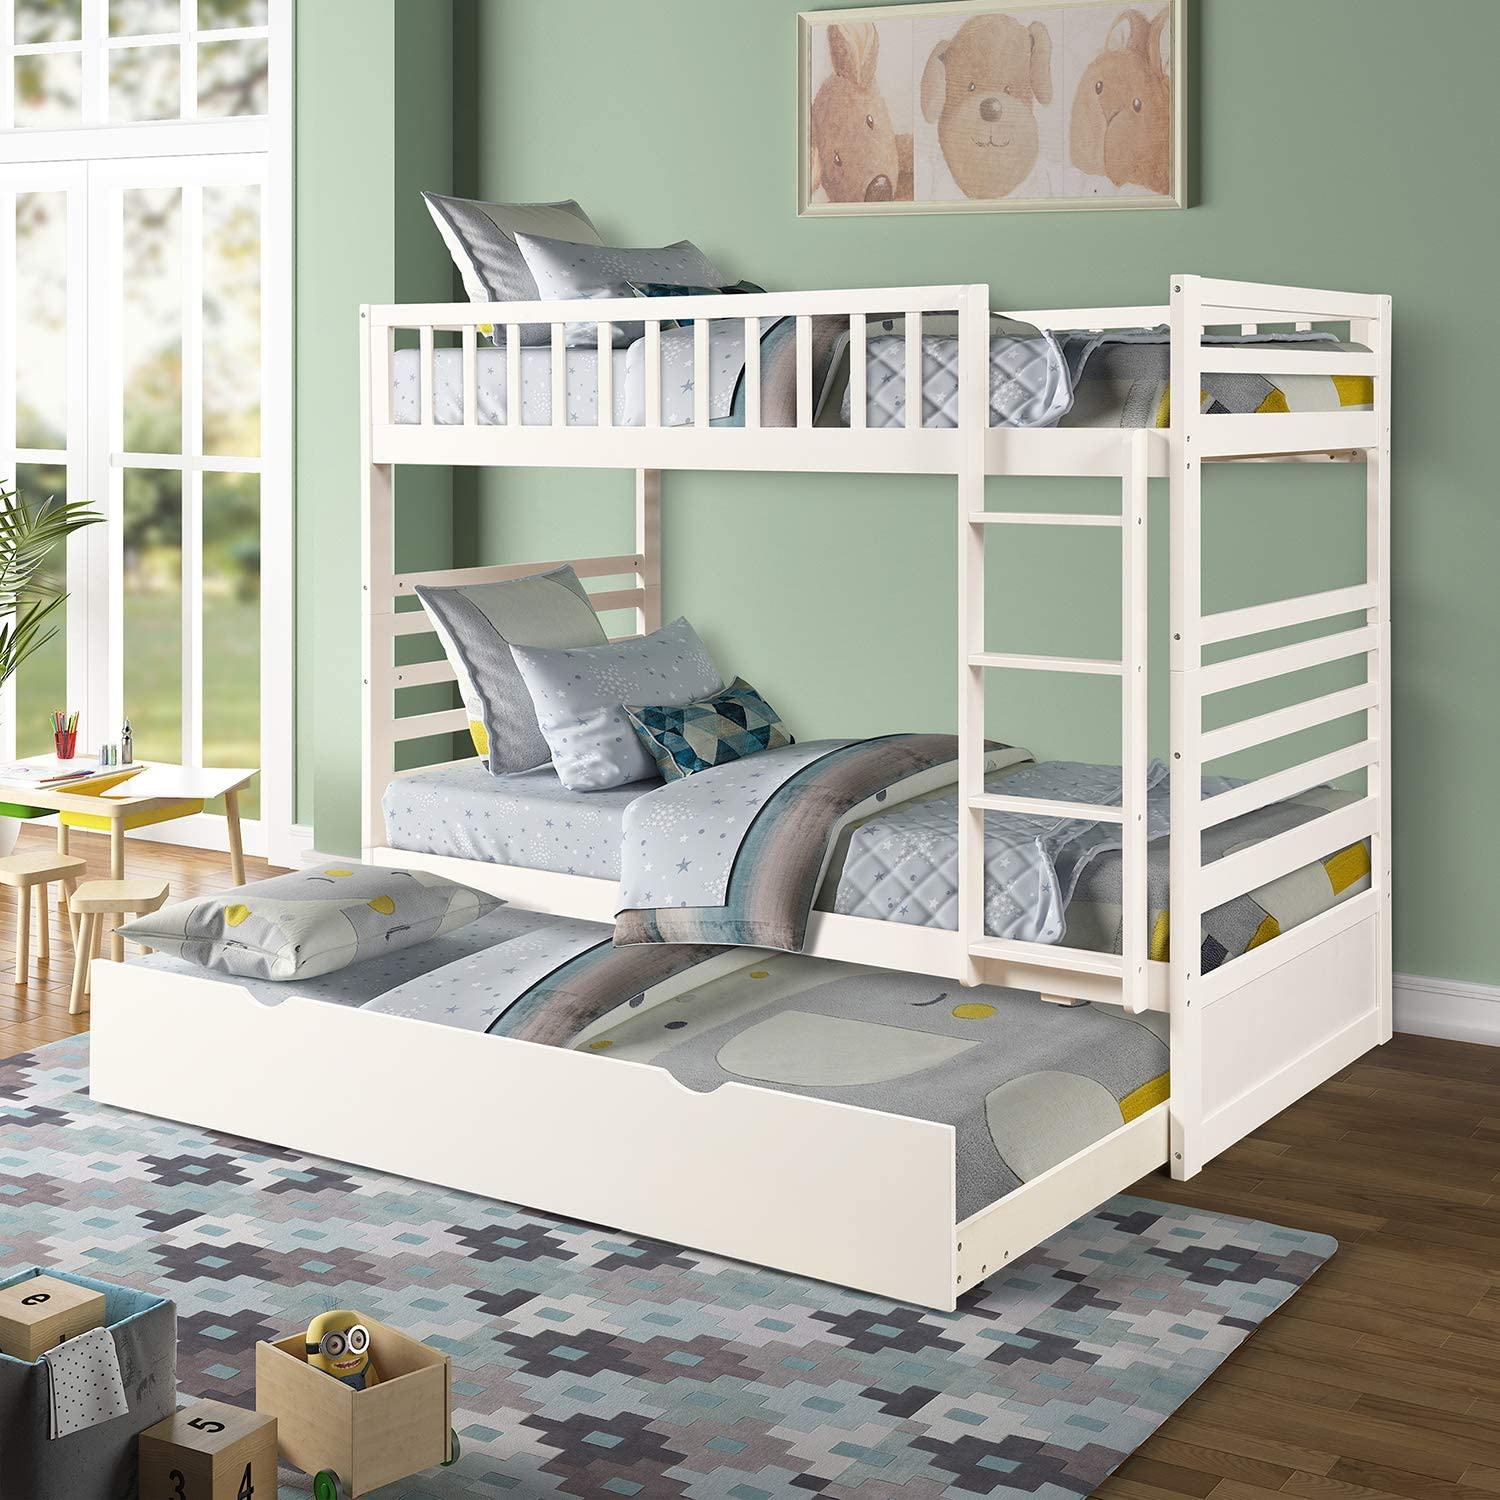 Amazon Com Twin Over Twin Bunk Bed Rockjame Space Saving Design Sleeping Bedroom Furniture With Trundle Solid Wood Bunk Bed Ladder And Safety Rail For Boys And Girls White Kitchen Dining